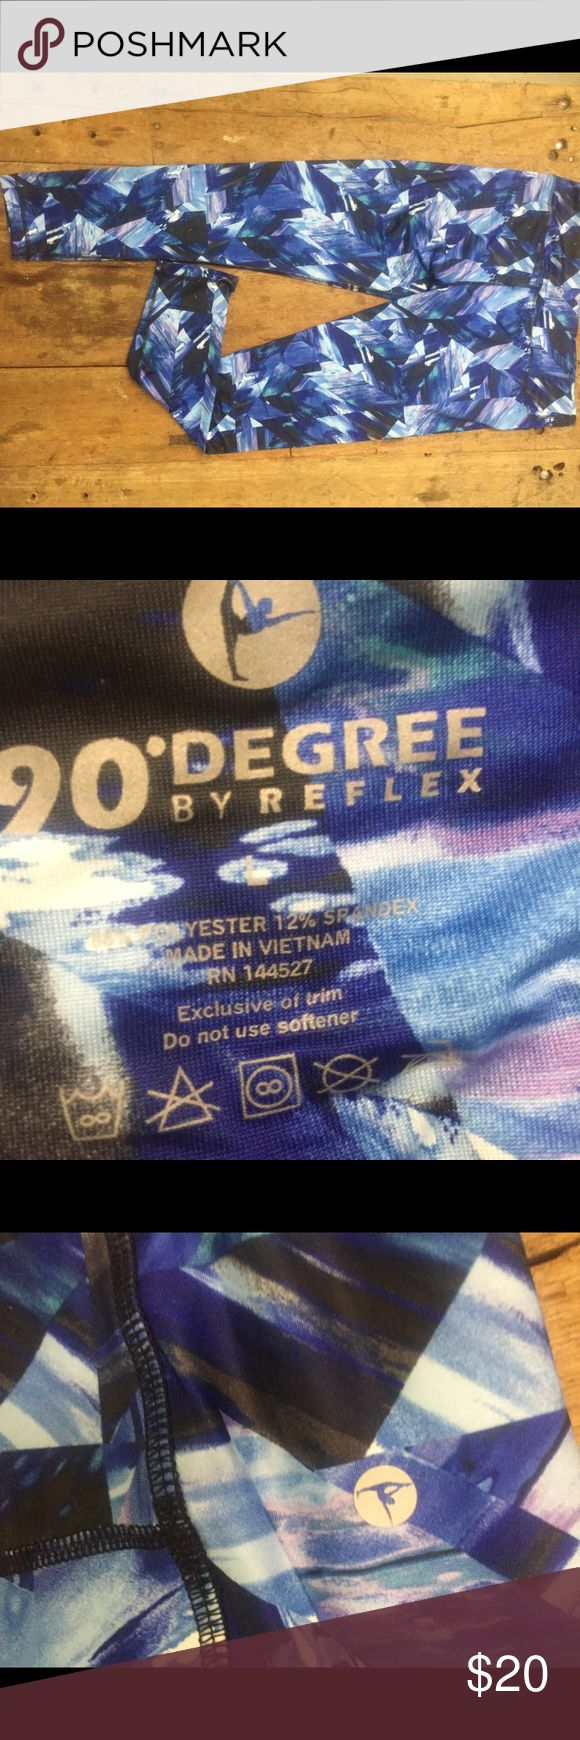 """90 Degree By Reflex Performance Activewear Pants 90 Degree By Reflex Performance Activewear - Printed Yoga Leggings. Worn once. Waist 16"""". Inseam 28"""". 88% polyester and 12% spandex.  Last photo to show fit. Location 1024. 90 Degree By Reflex Pants Leggings"""